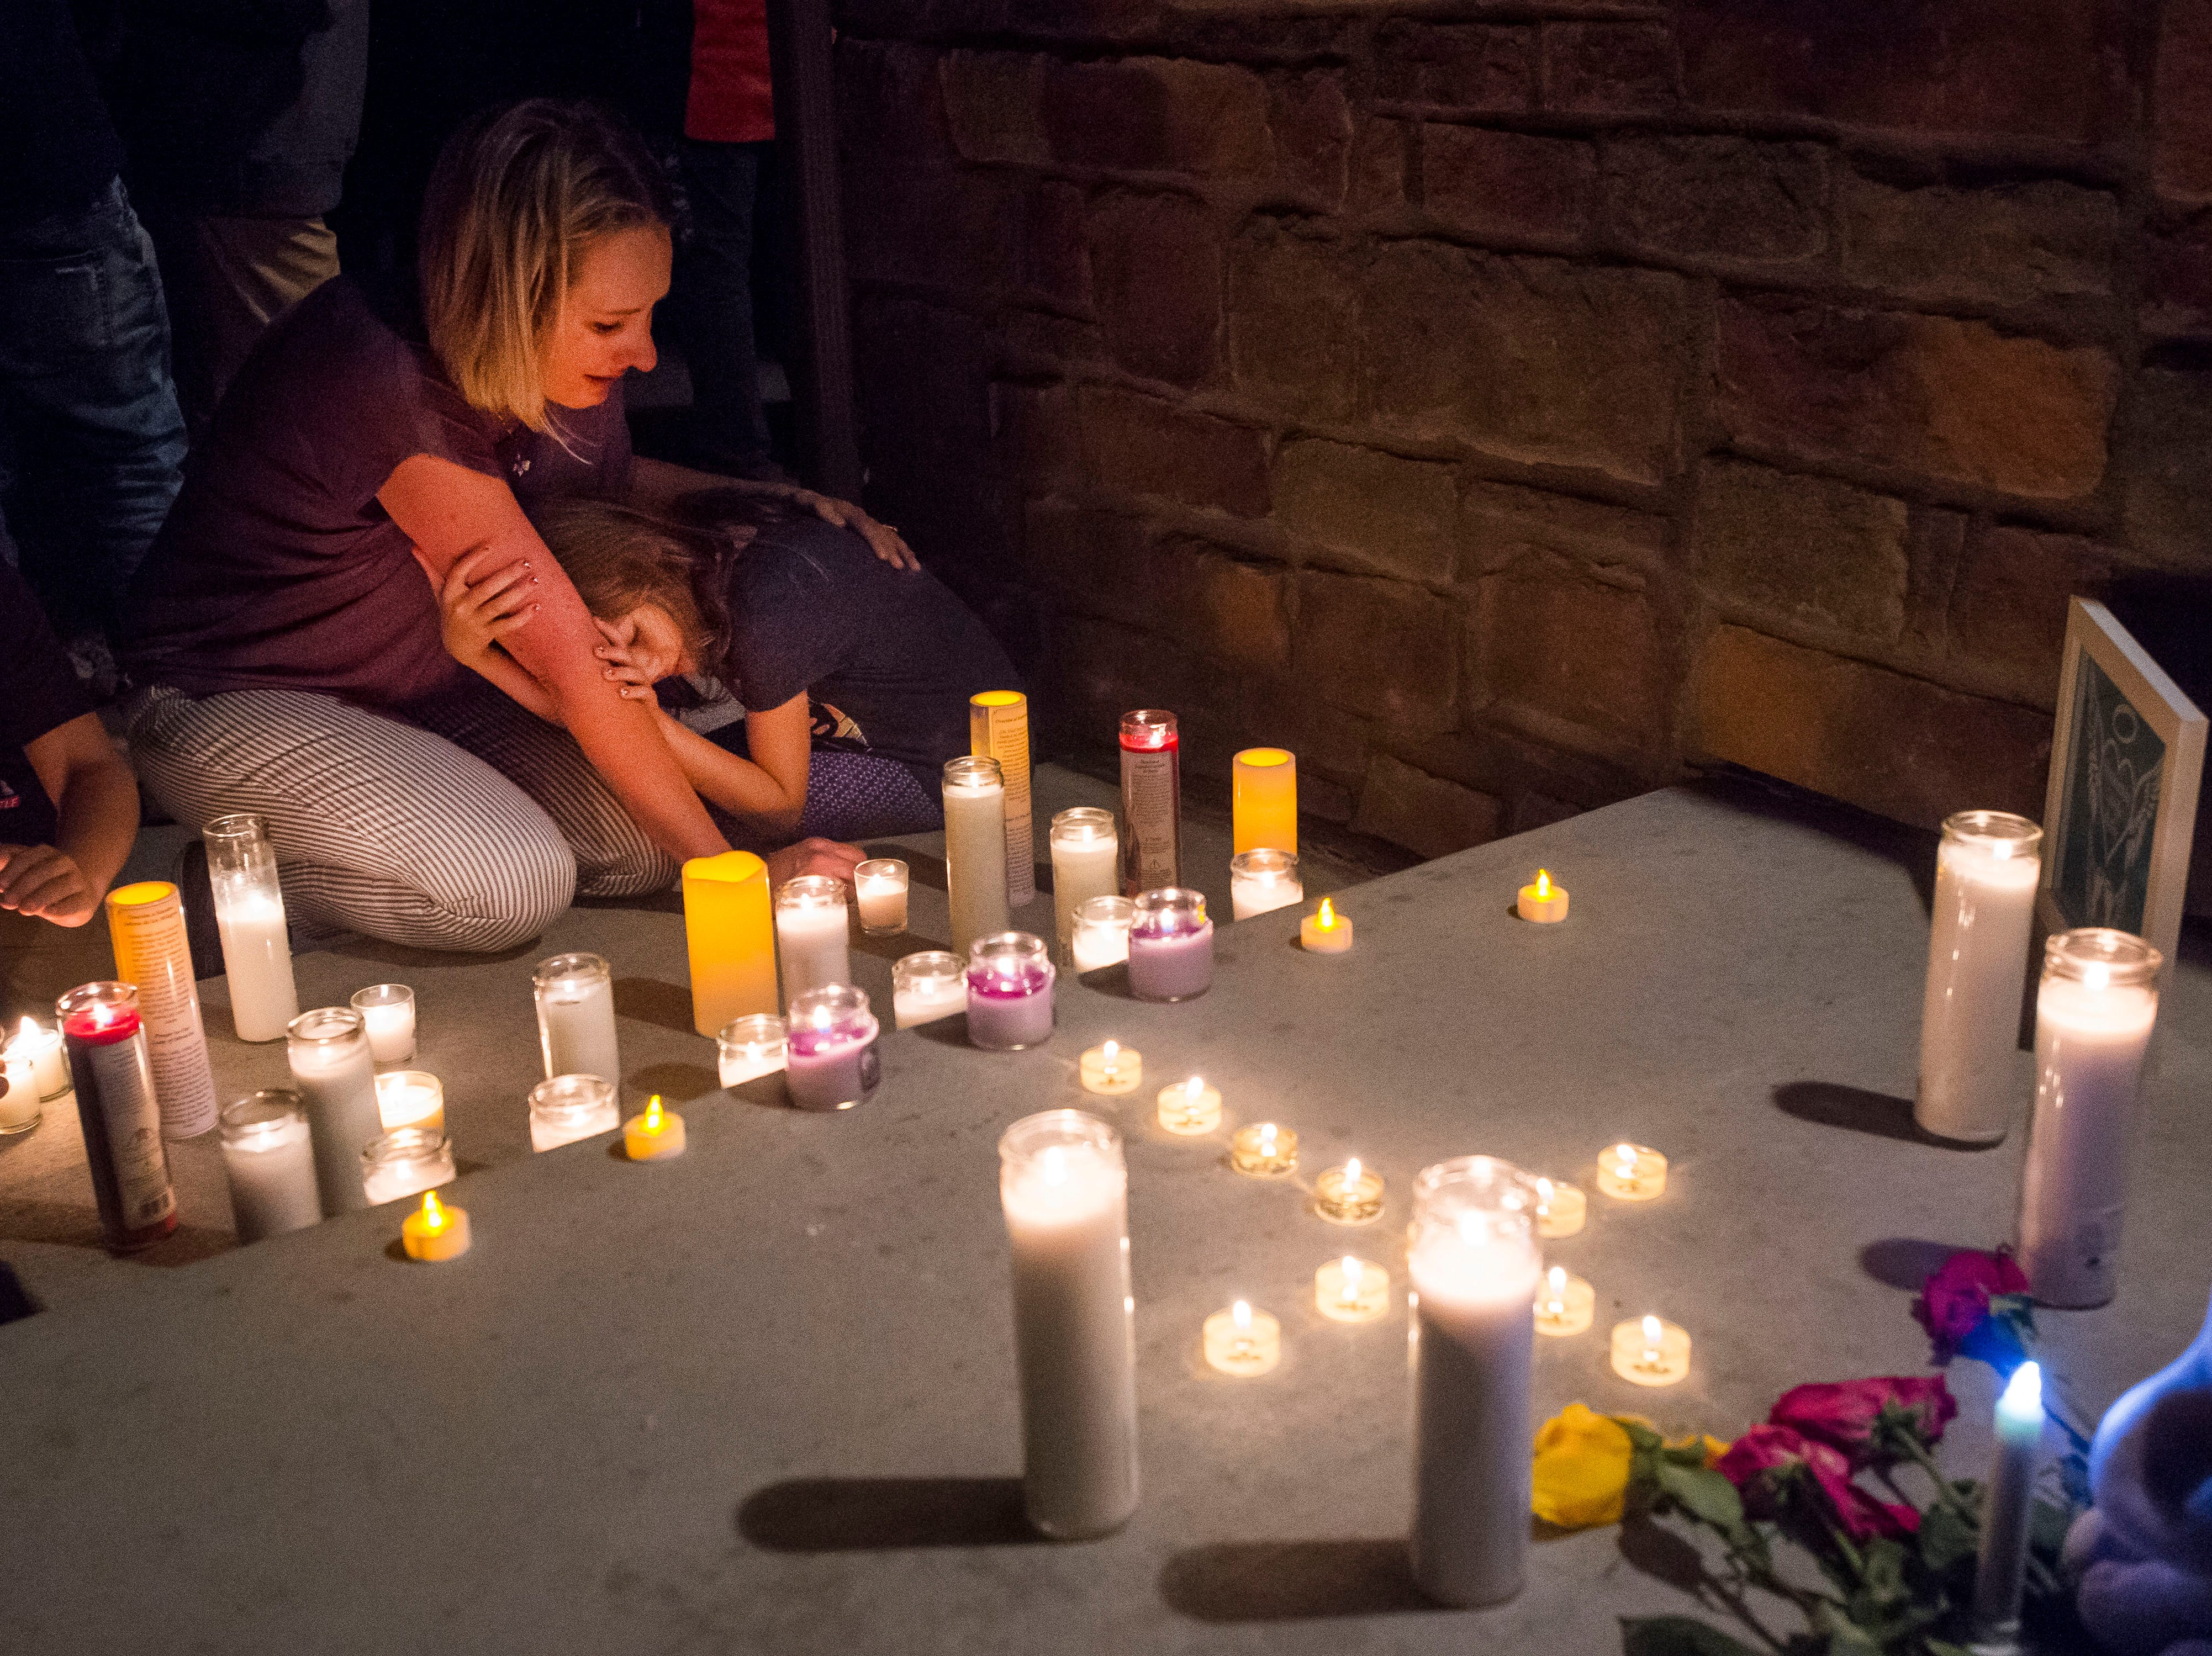 Timeline: Key dates in investigation of deaths of Shanann Watts, 2 daughters in Colorado